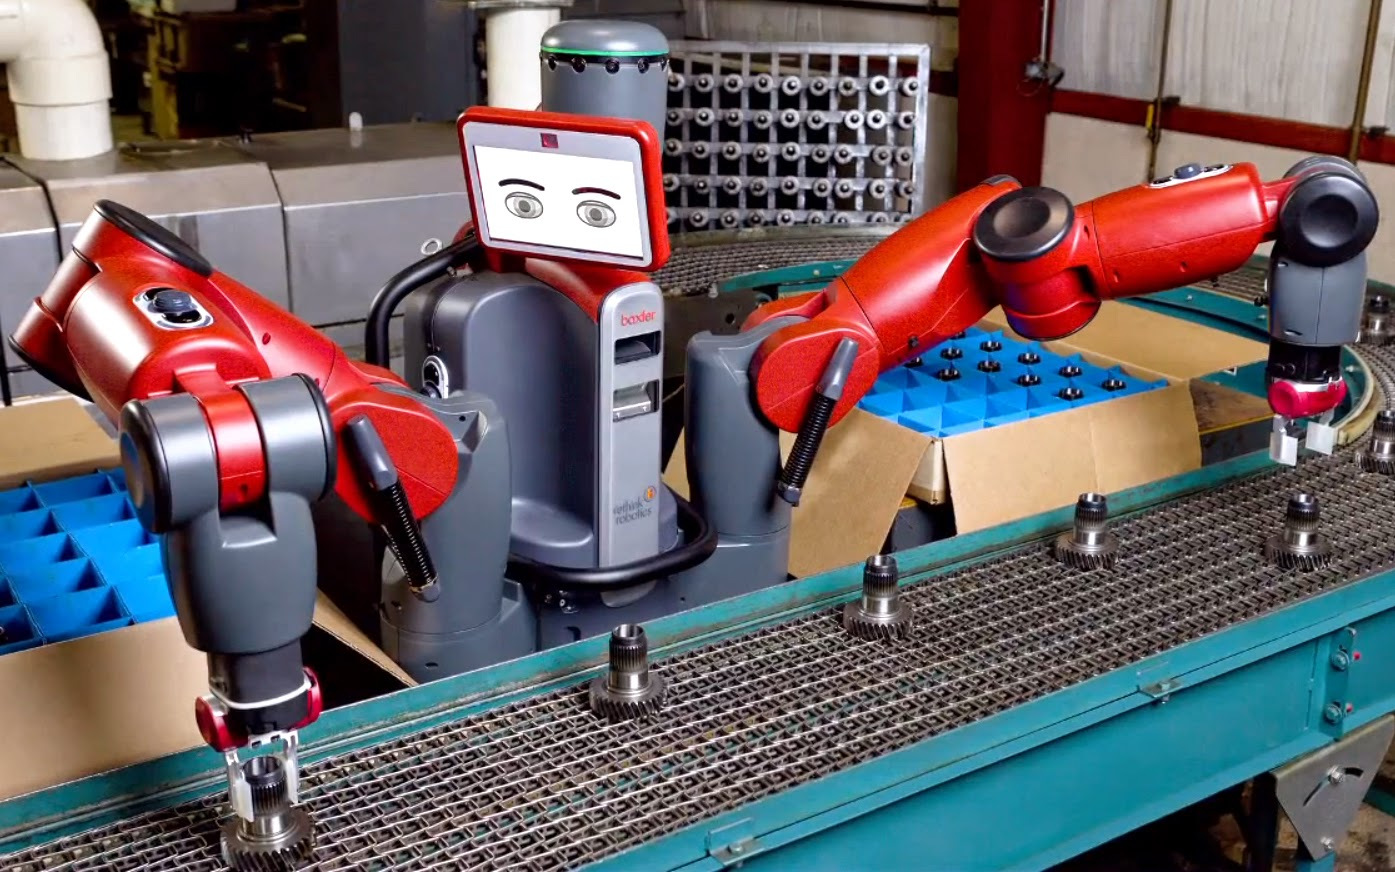 Baxter from Rethink Robotics